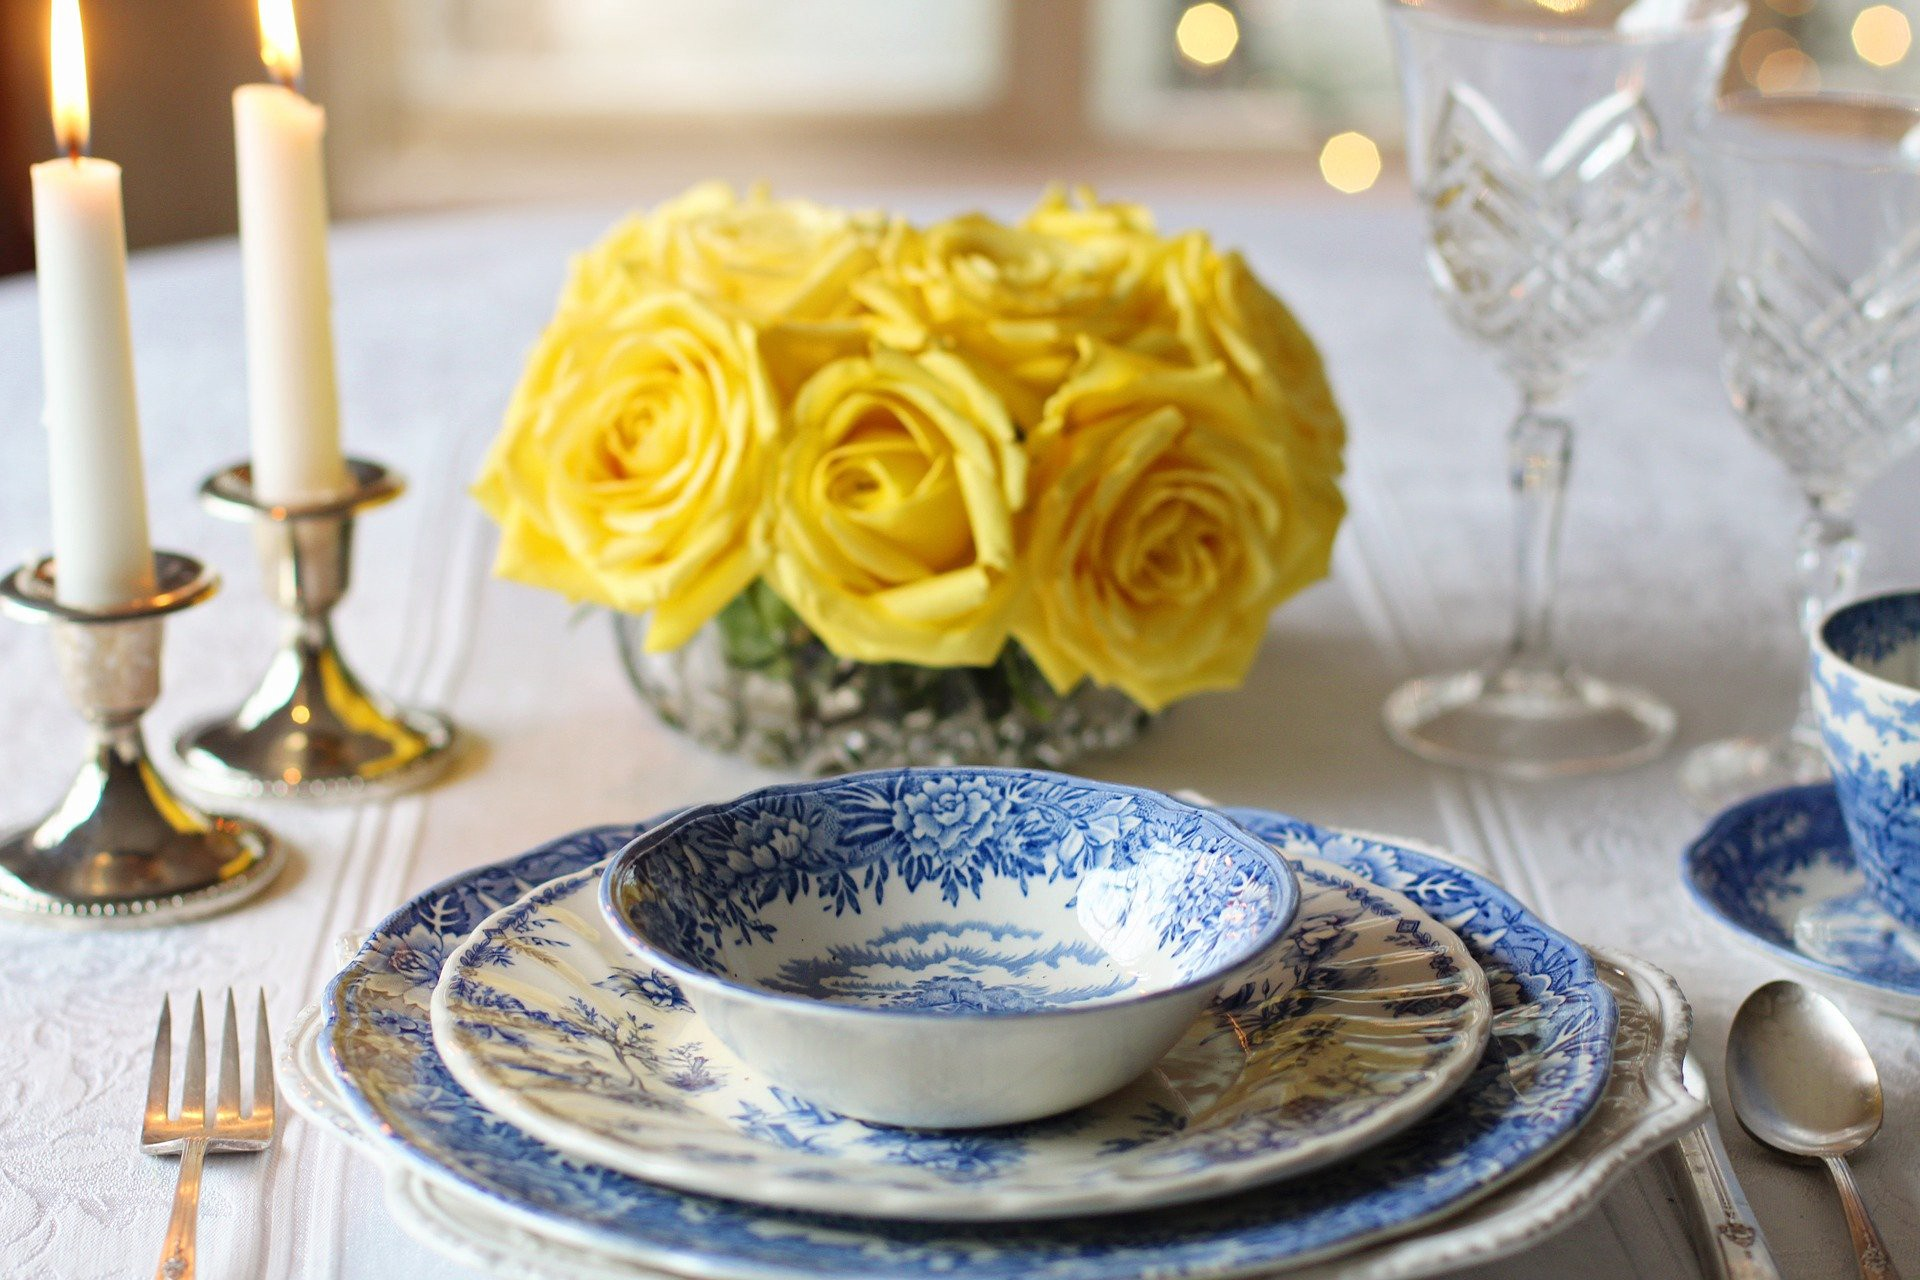 Dining Etiquette and Table Manners | by John M Dabbs | The ...